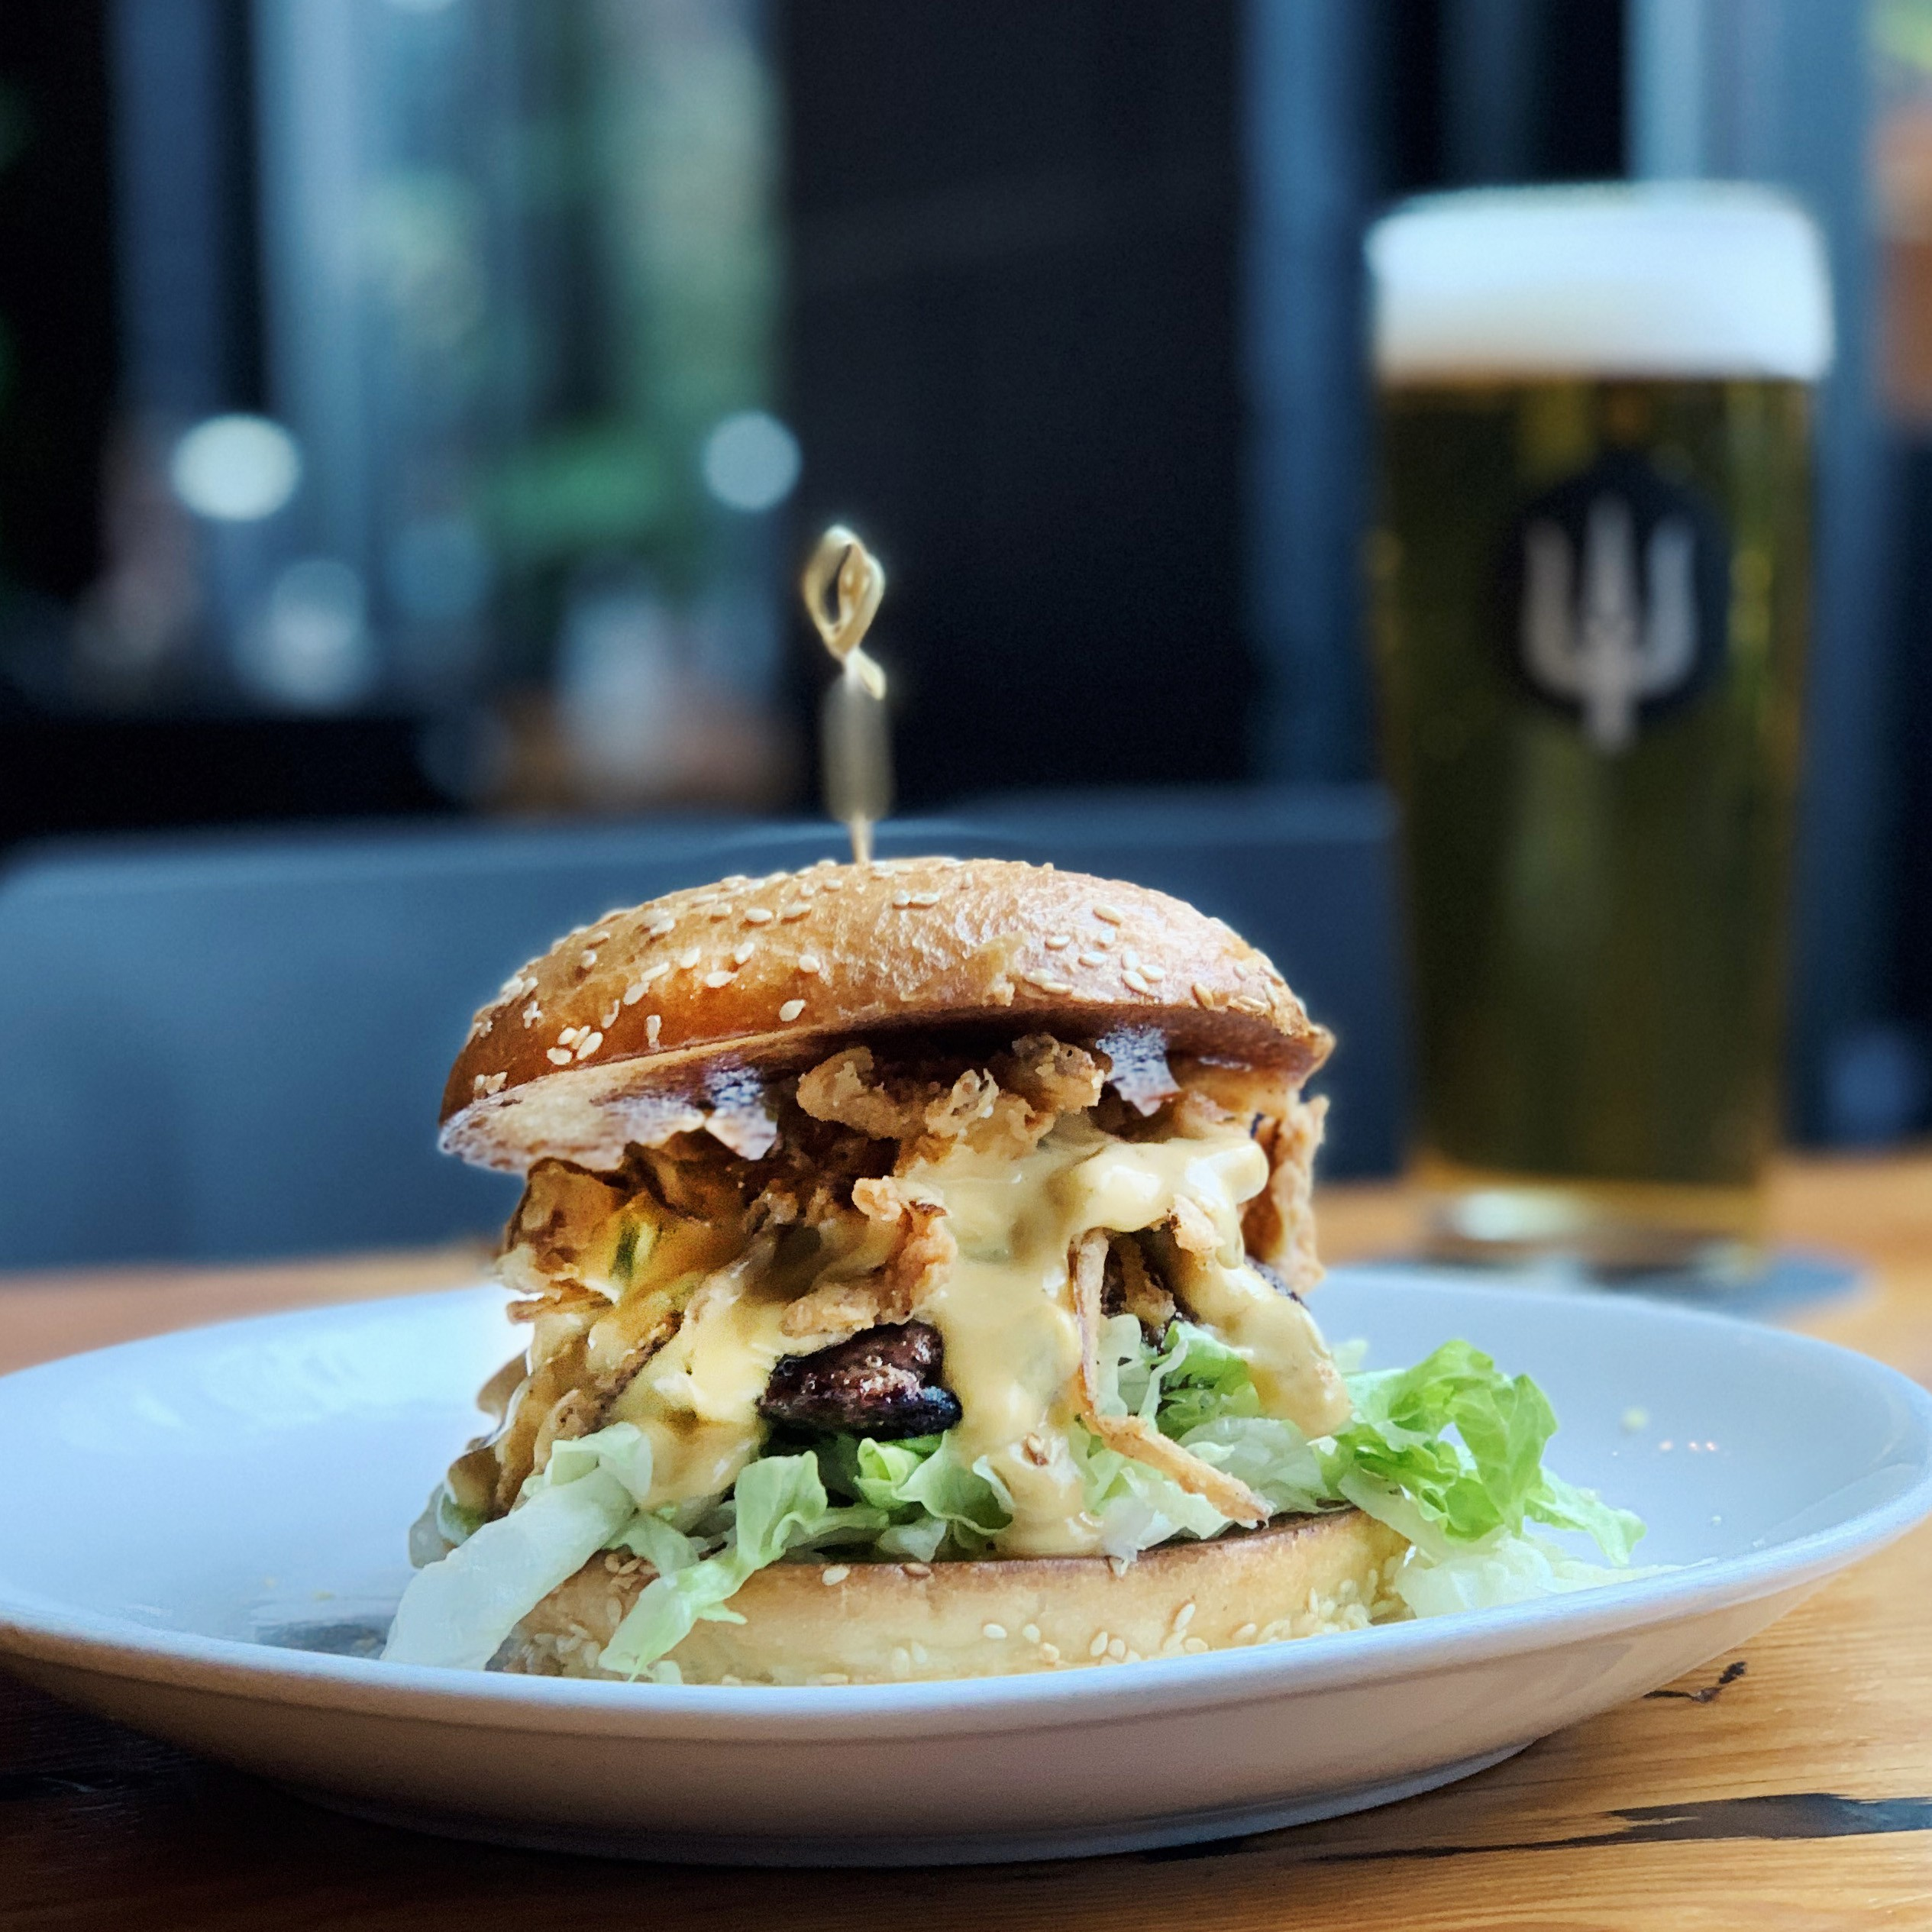 Burger of the Week: Hatch Chile Queso Burger